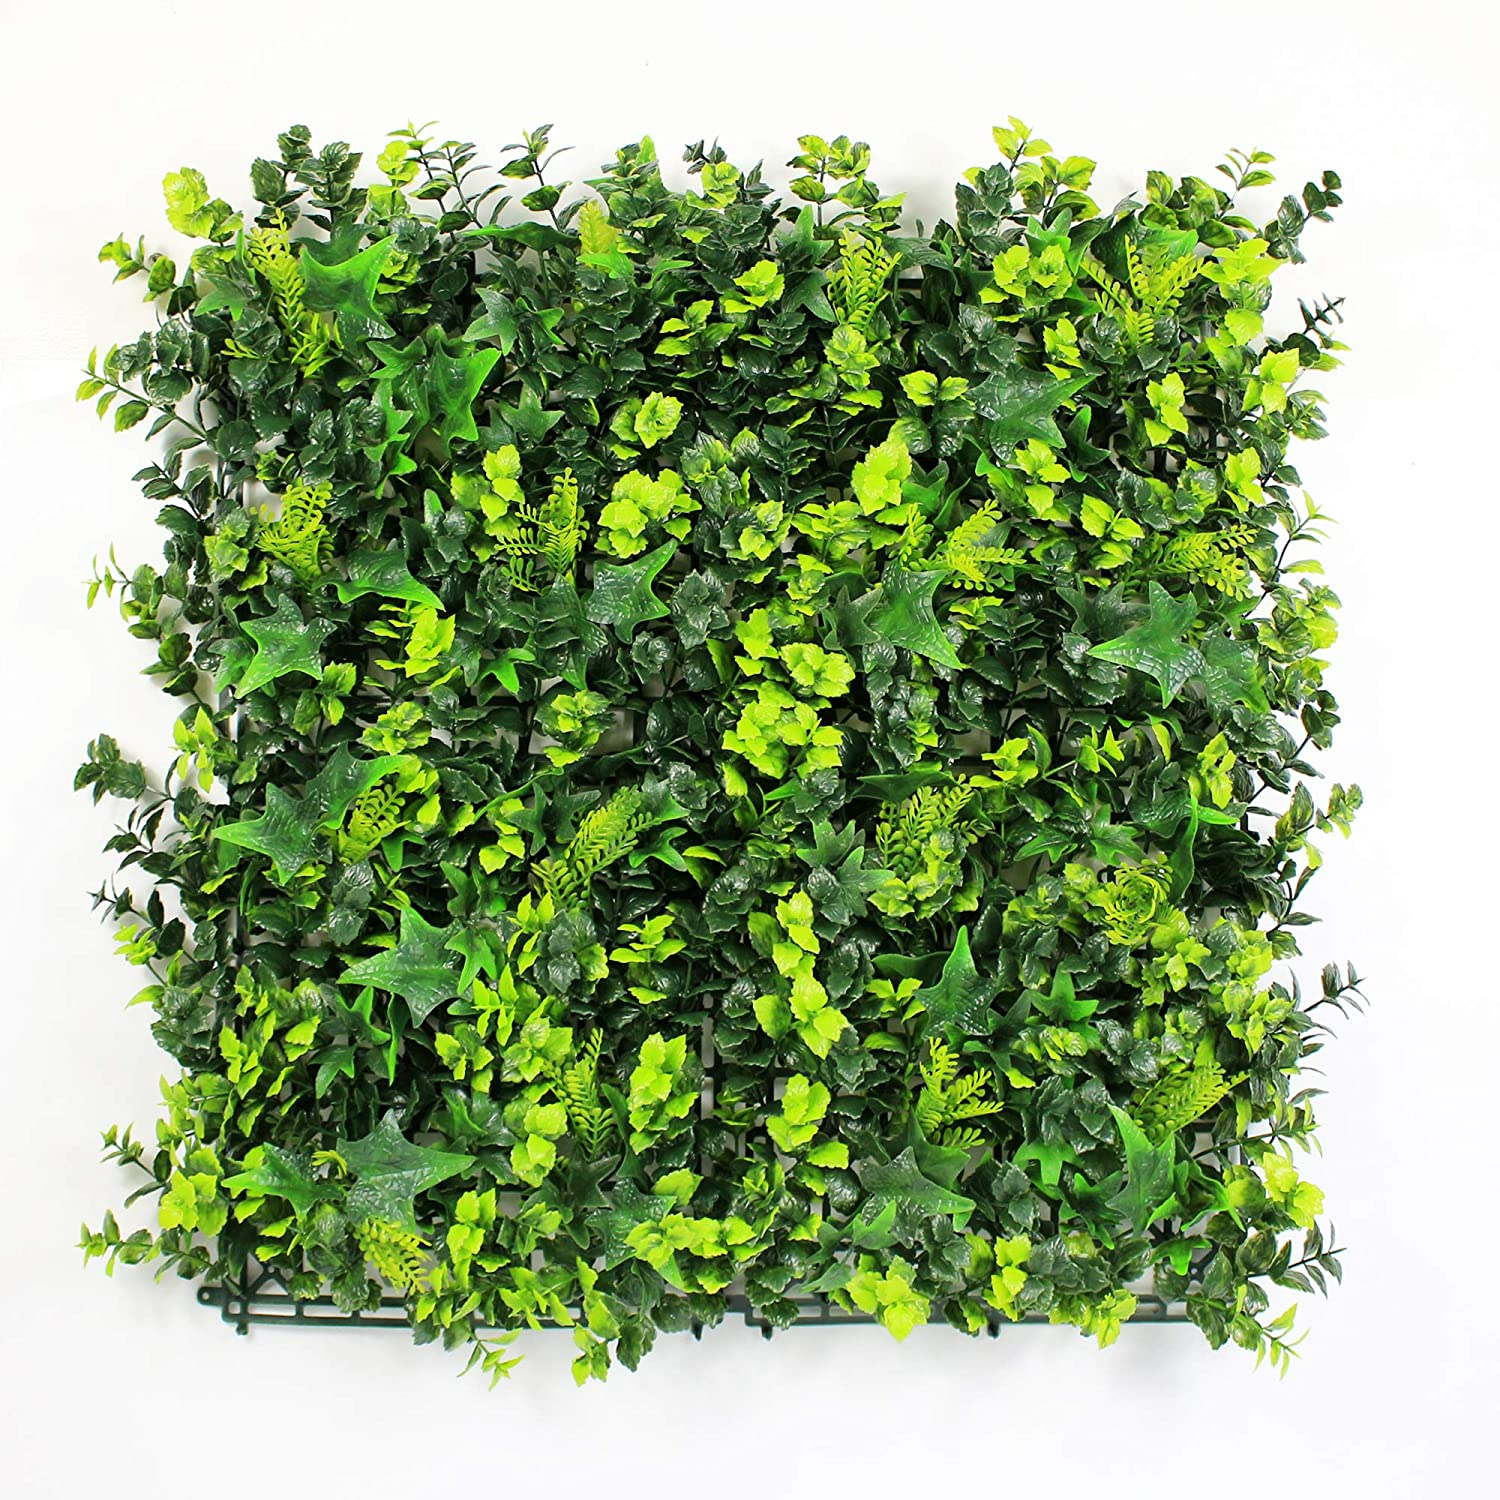 Indoor Greenery Decoration ULAND Artificial Boxwood Panels Plastic Greenery Ivy Mat one Piece 10x10